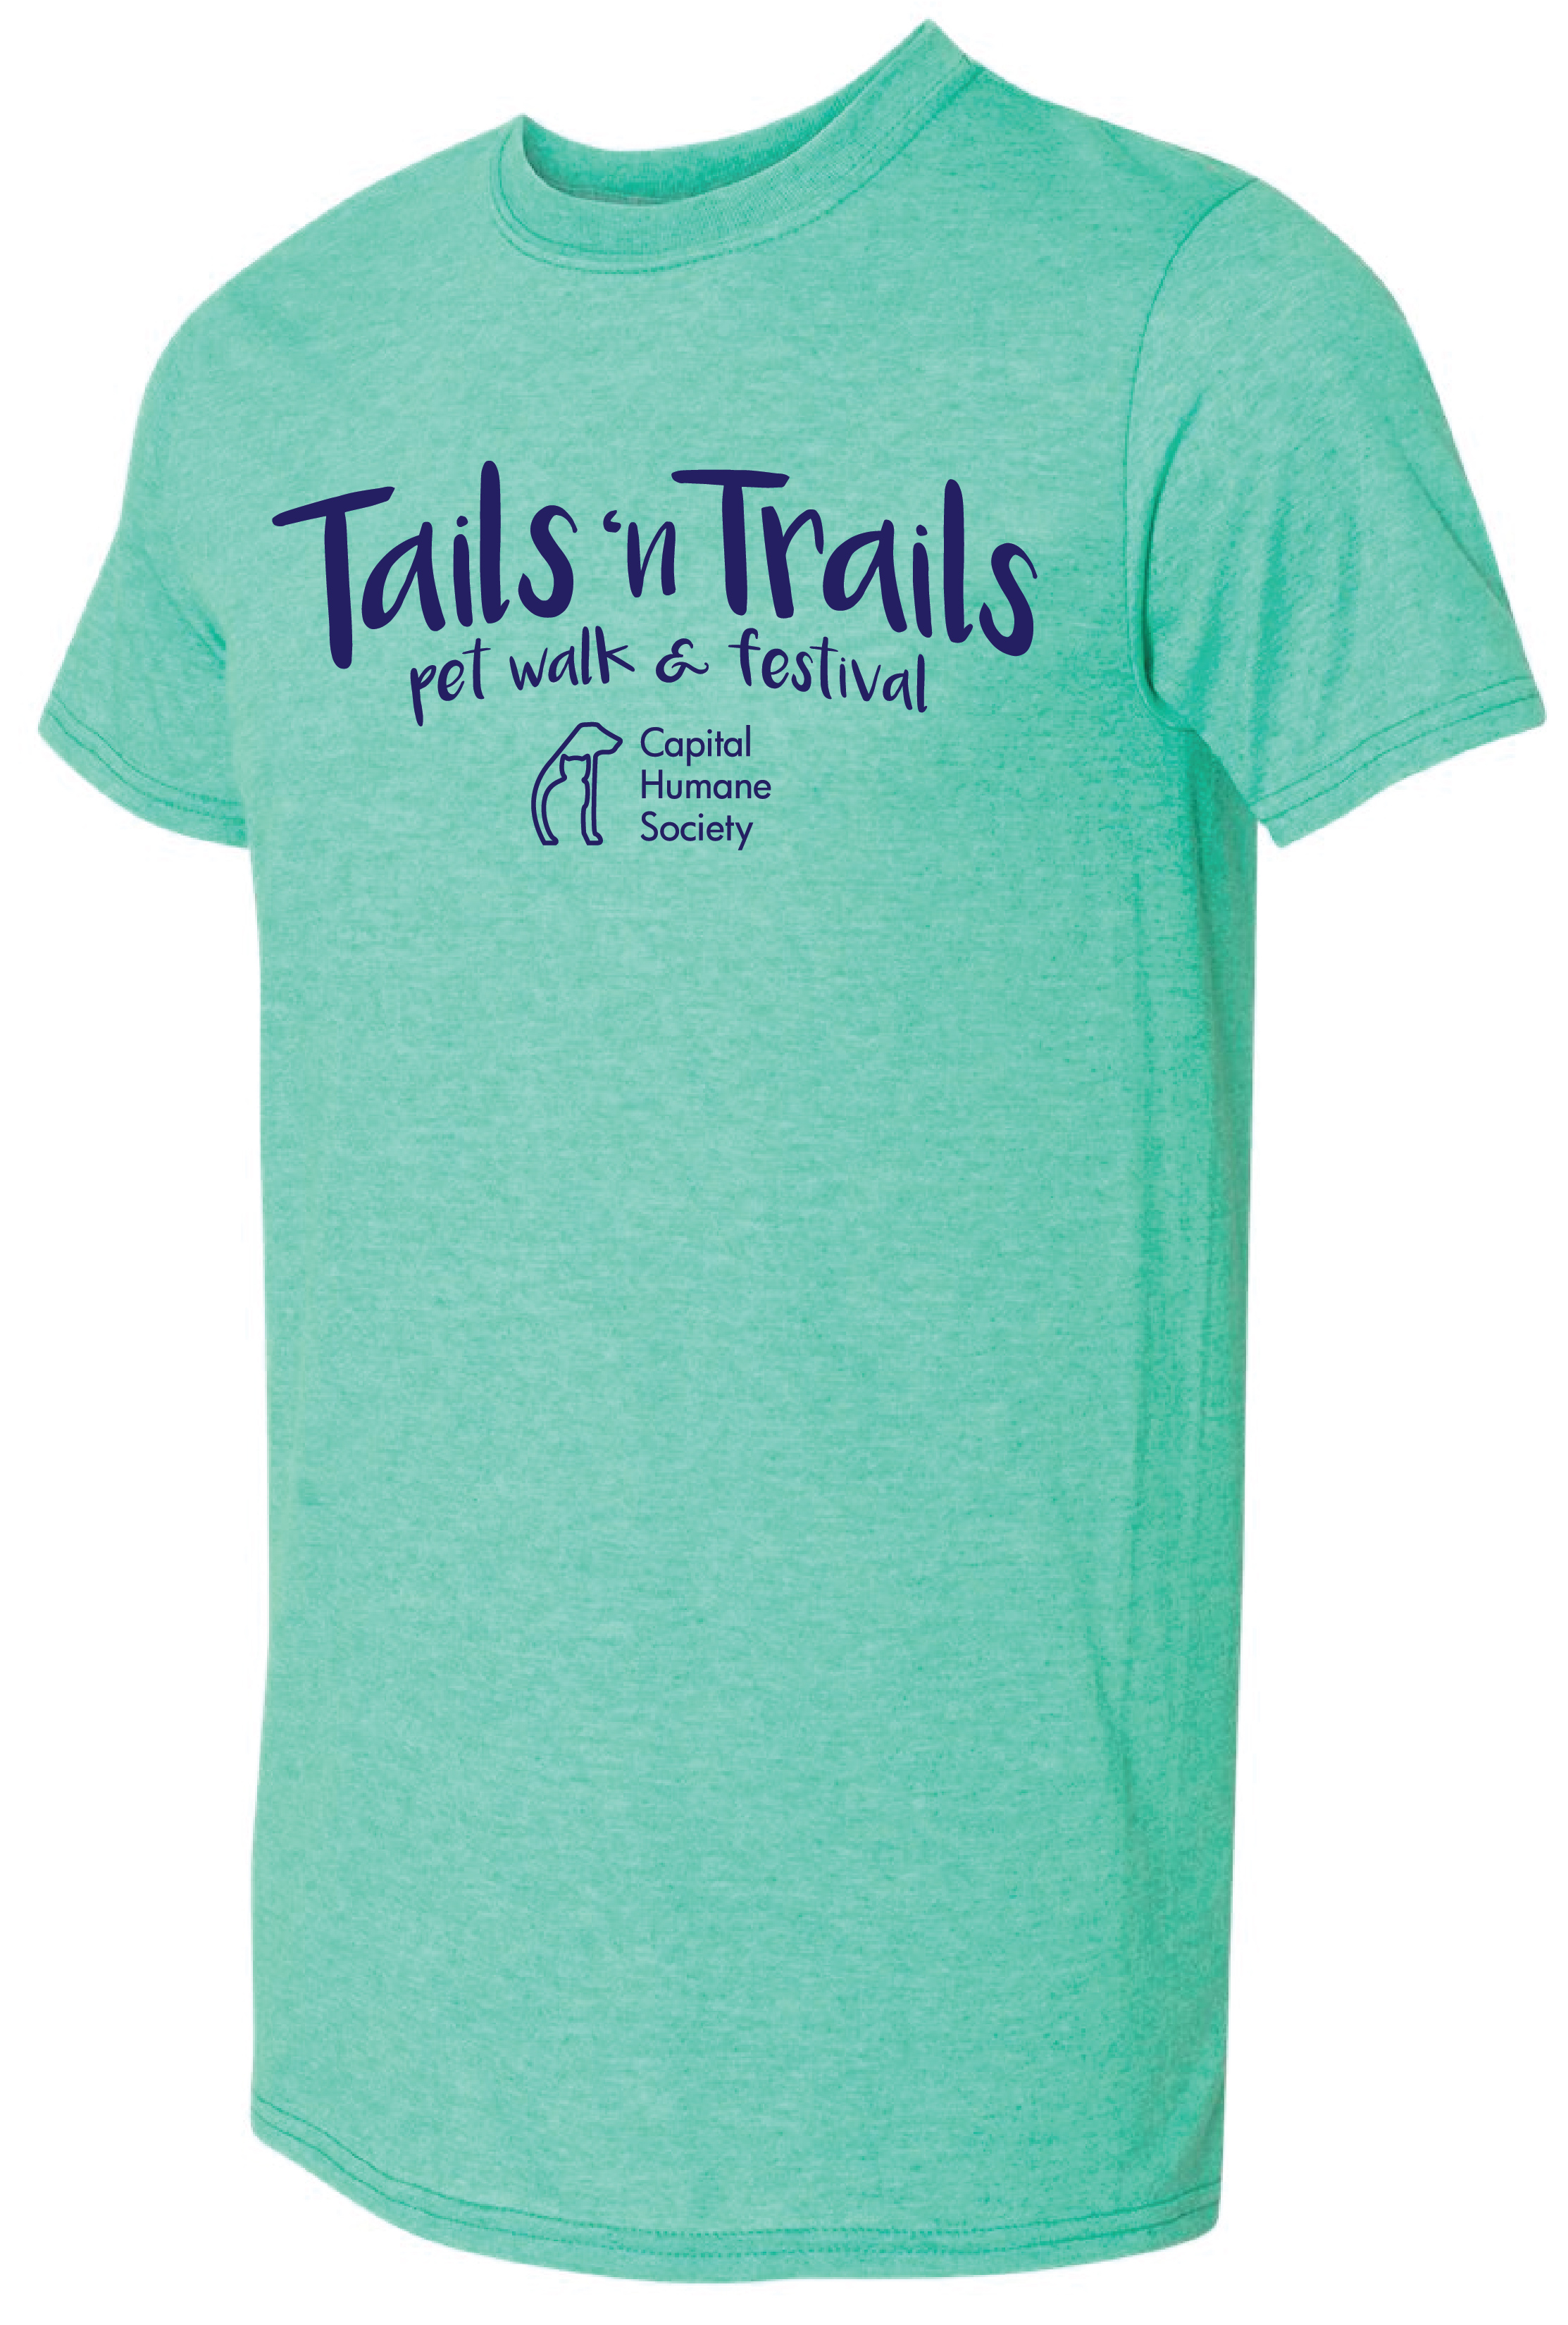 tails and trails shirt final mockup 1-01.jpg